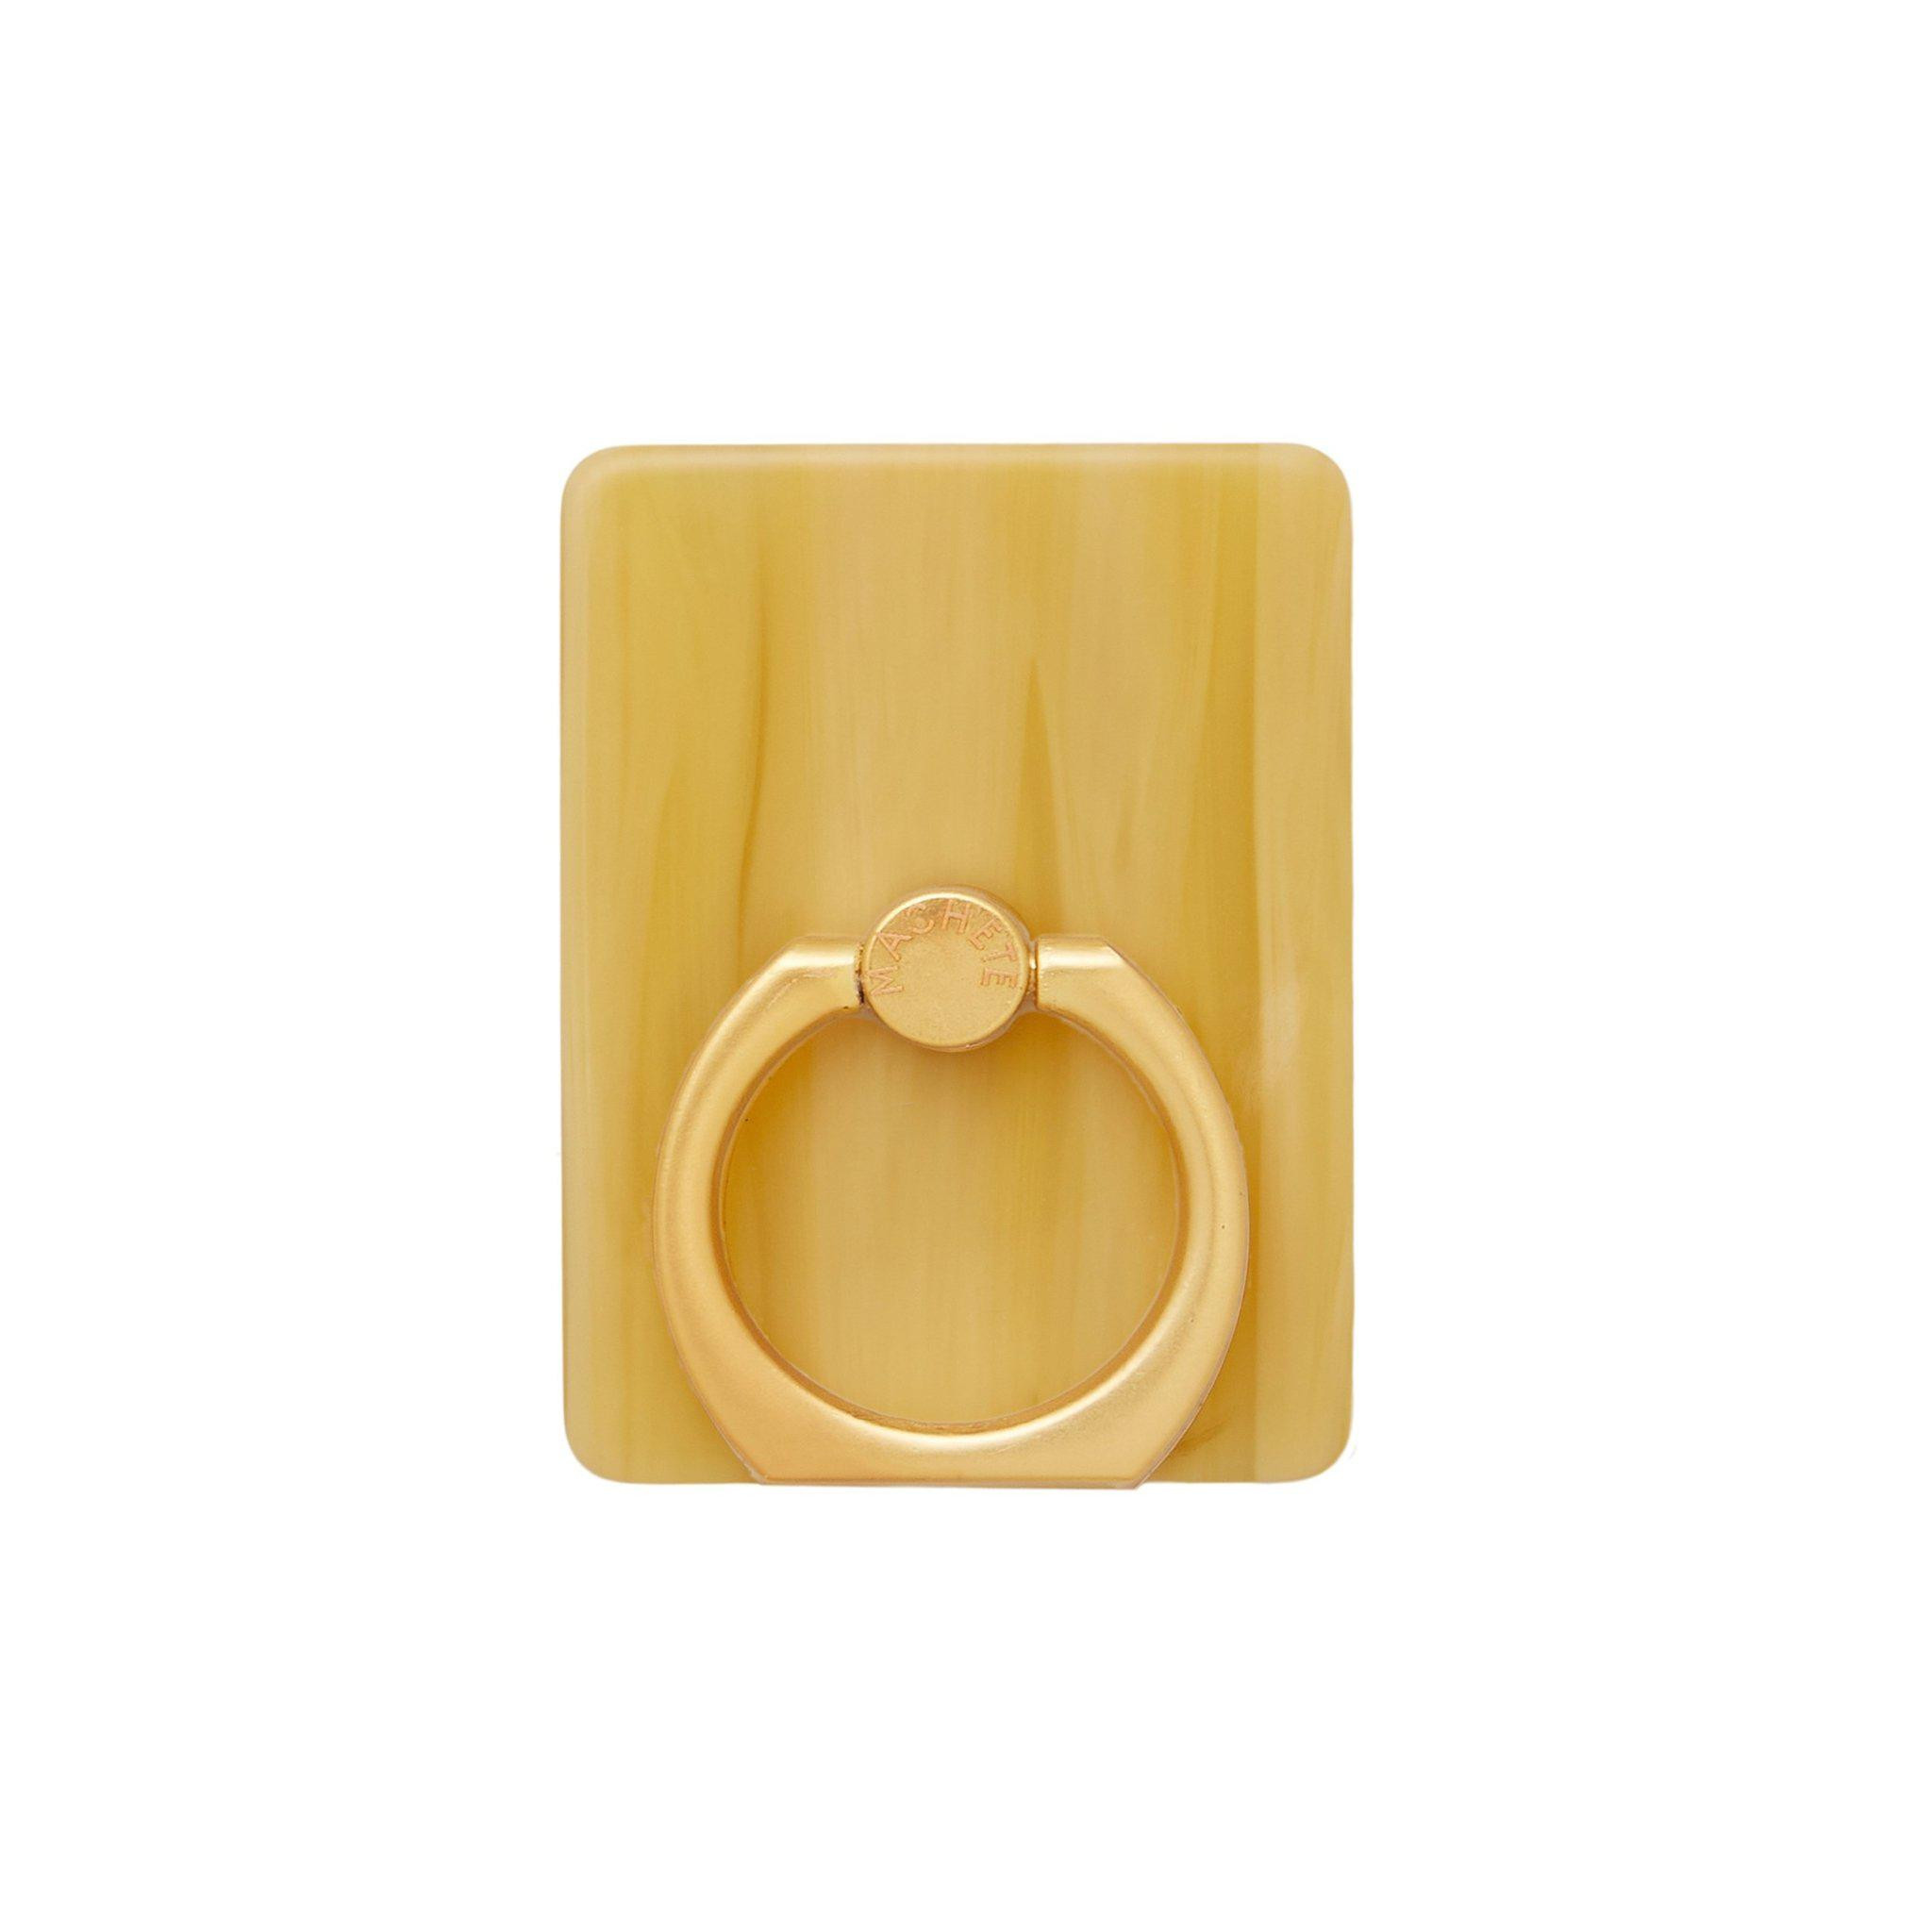 Phone Ring in Naples Yellow 0